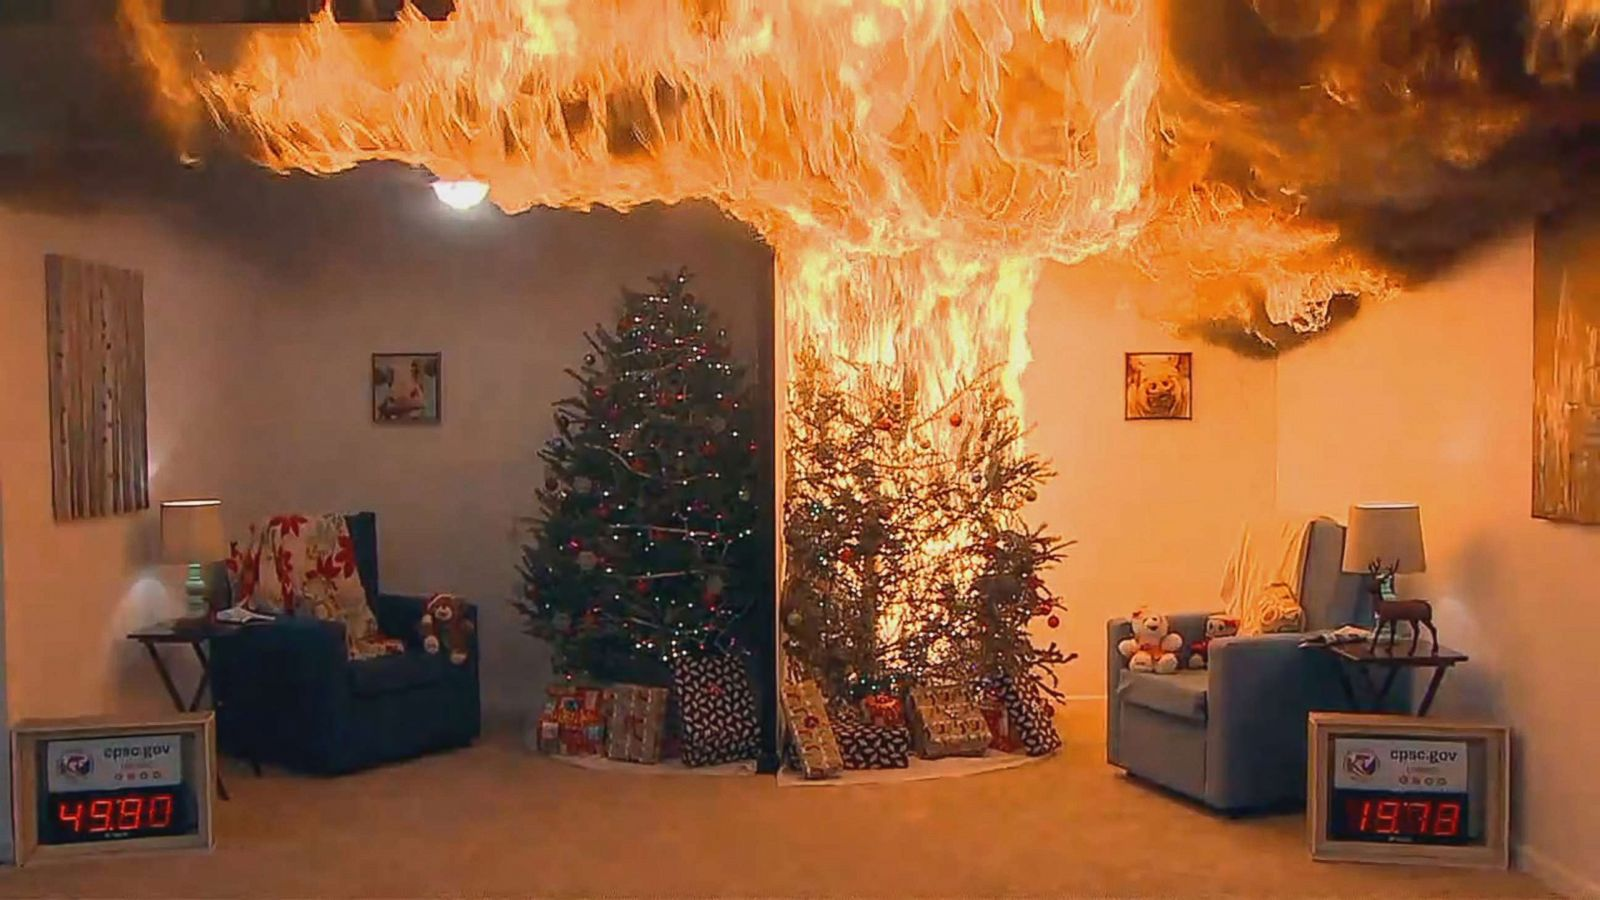 Holiday Nightmare How To Avoid Deadly Christmas Tree Fires Abc News